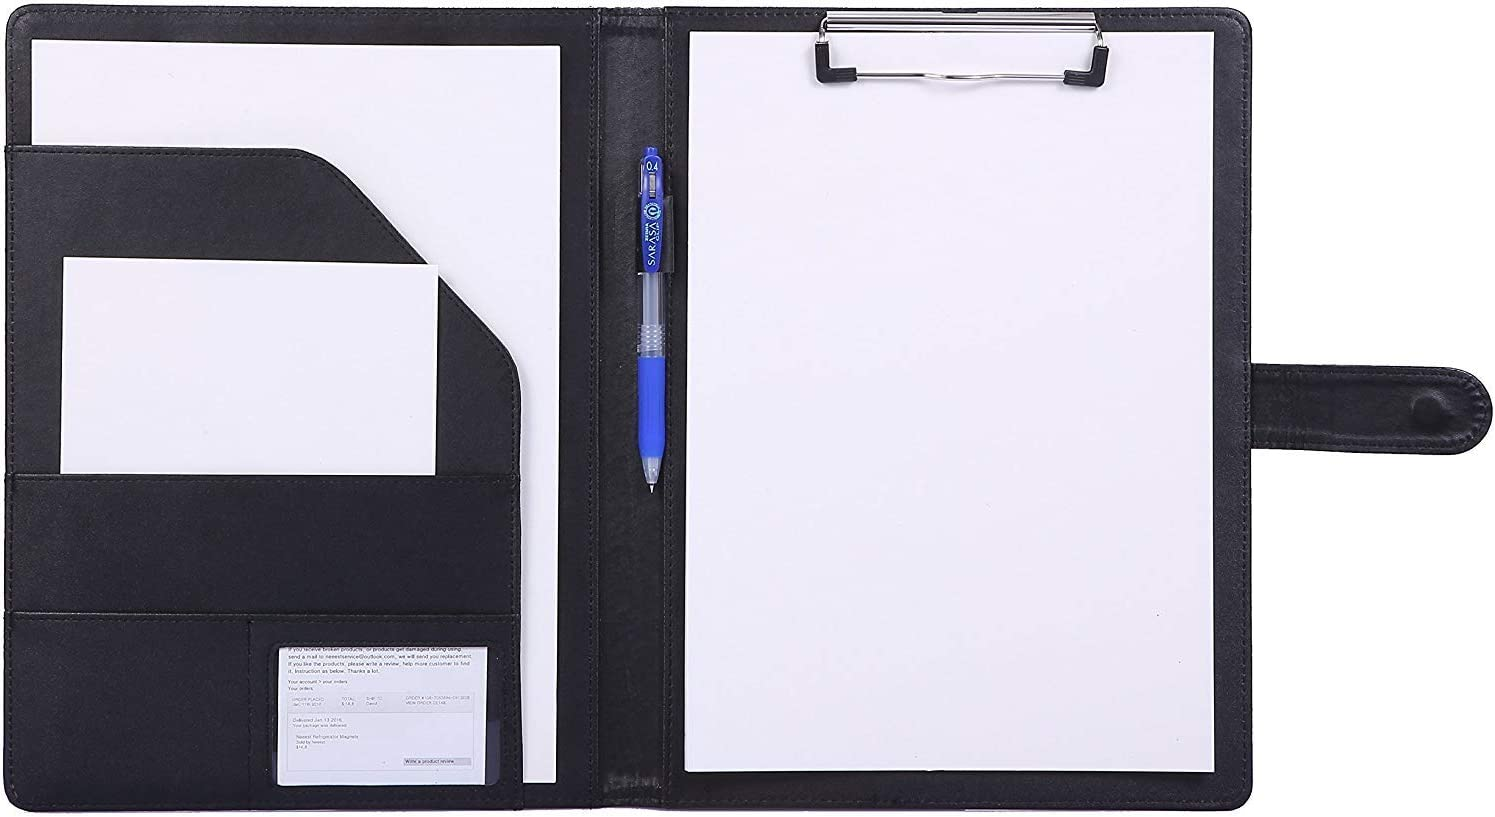 Padfolio Clipboard Folder Portfolio, Mymazn Faux Leather Storage Clipboard with Cover for Legal Pad Holder Letter Size A4 Writing Pad for Business School Office Conference Notepad Clip Boards (Black)